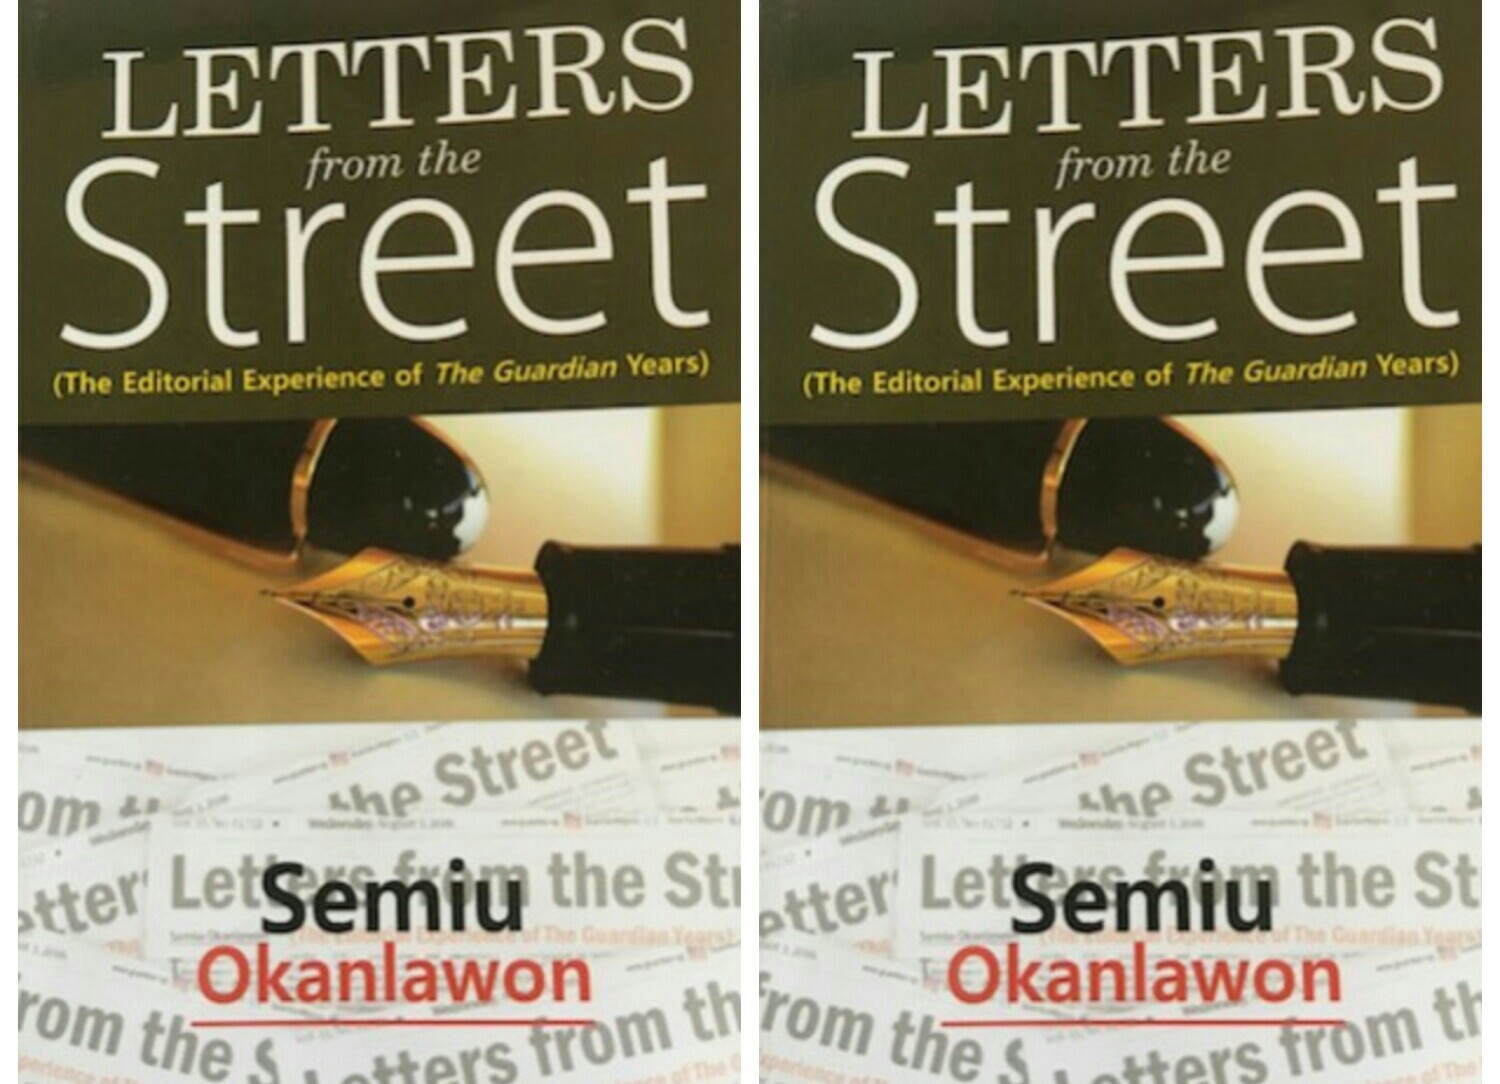 Letters from the Street: History and the Burdens of Journalism